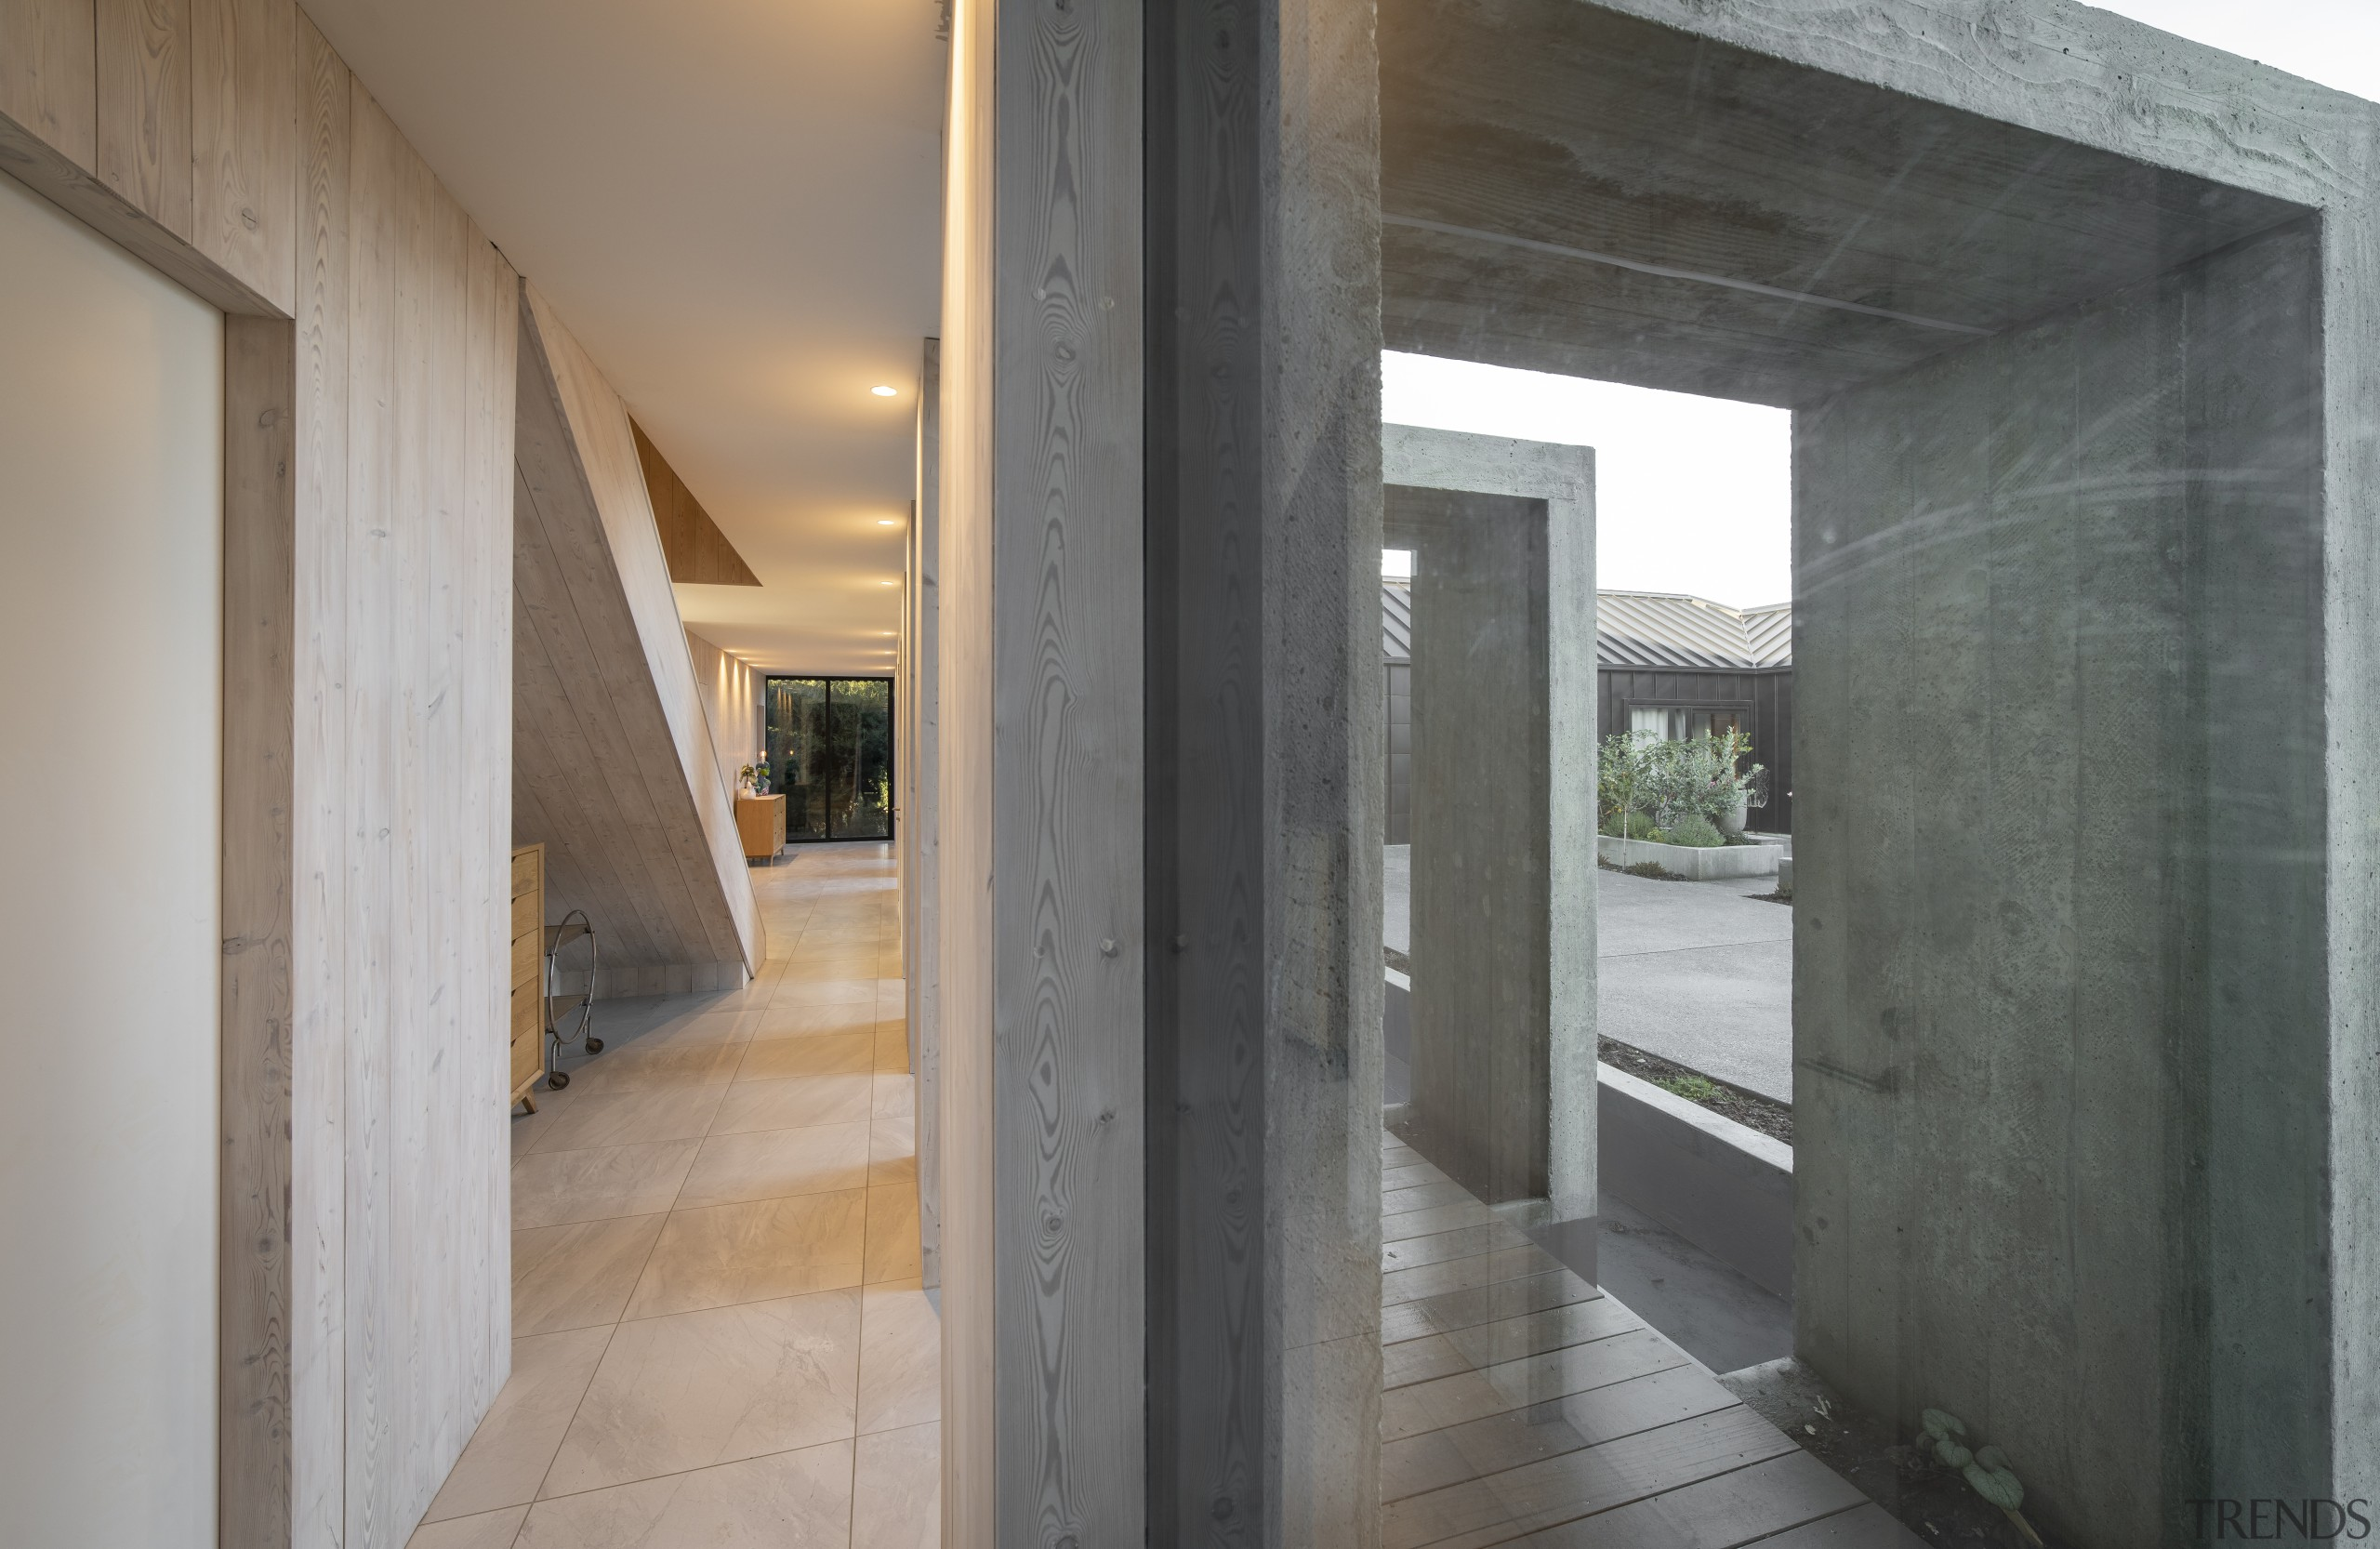 The sculptural external walkway entry to this home gray